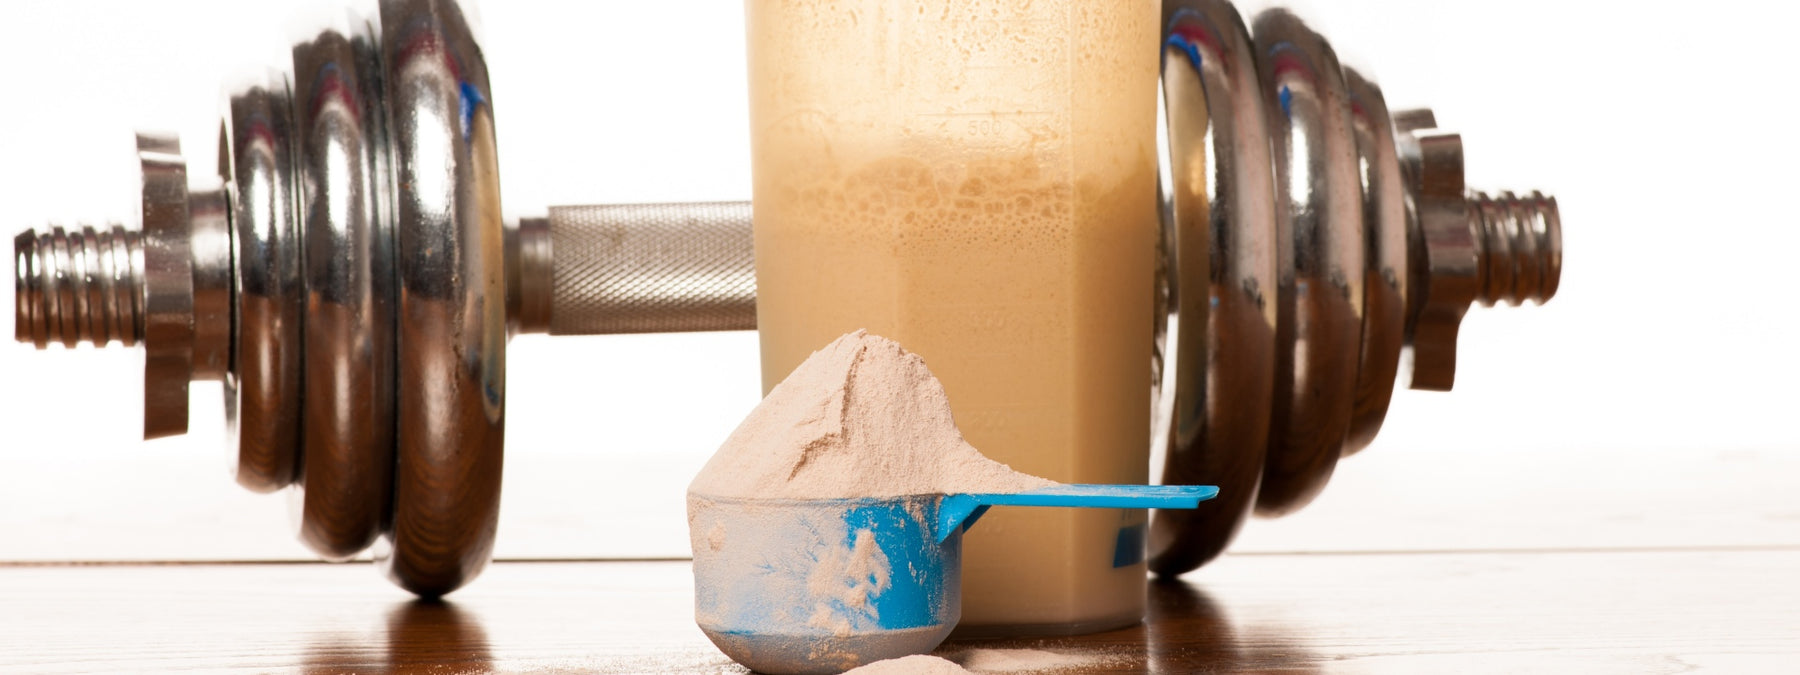 The Last Casein Protein Powder Article You'll Ever Need